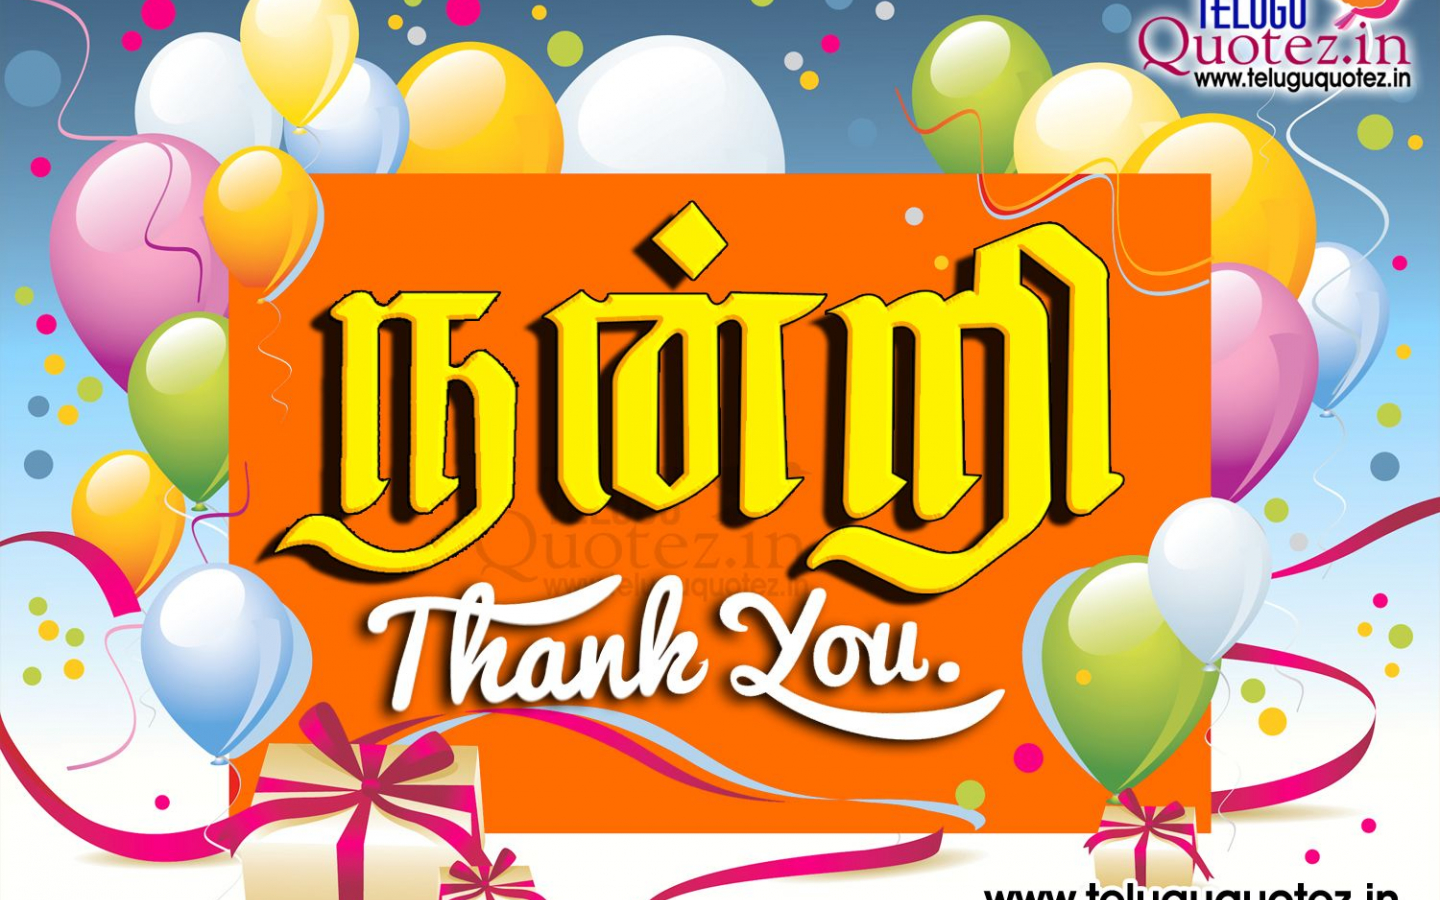 Free Download Thank You Nandri Quotes For Birthday Wishes In Tamil Language 1500x1054 For Your Desktop Mobile Tablet Explore 42 Thank Wallpaper Thank Wallpaper Thank You Wallpaper Thank You Wallpaper Free